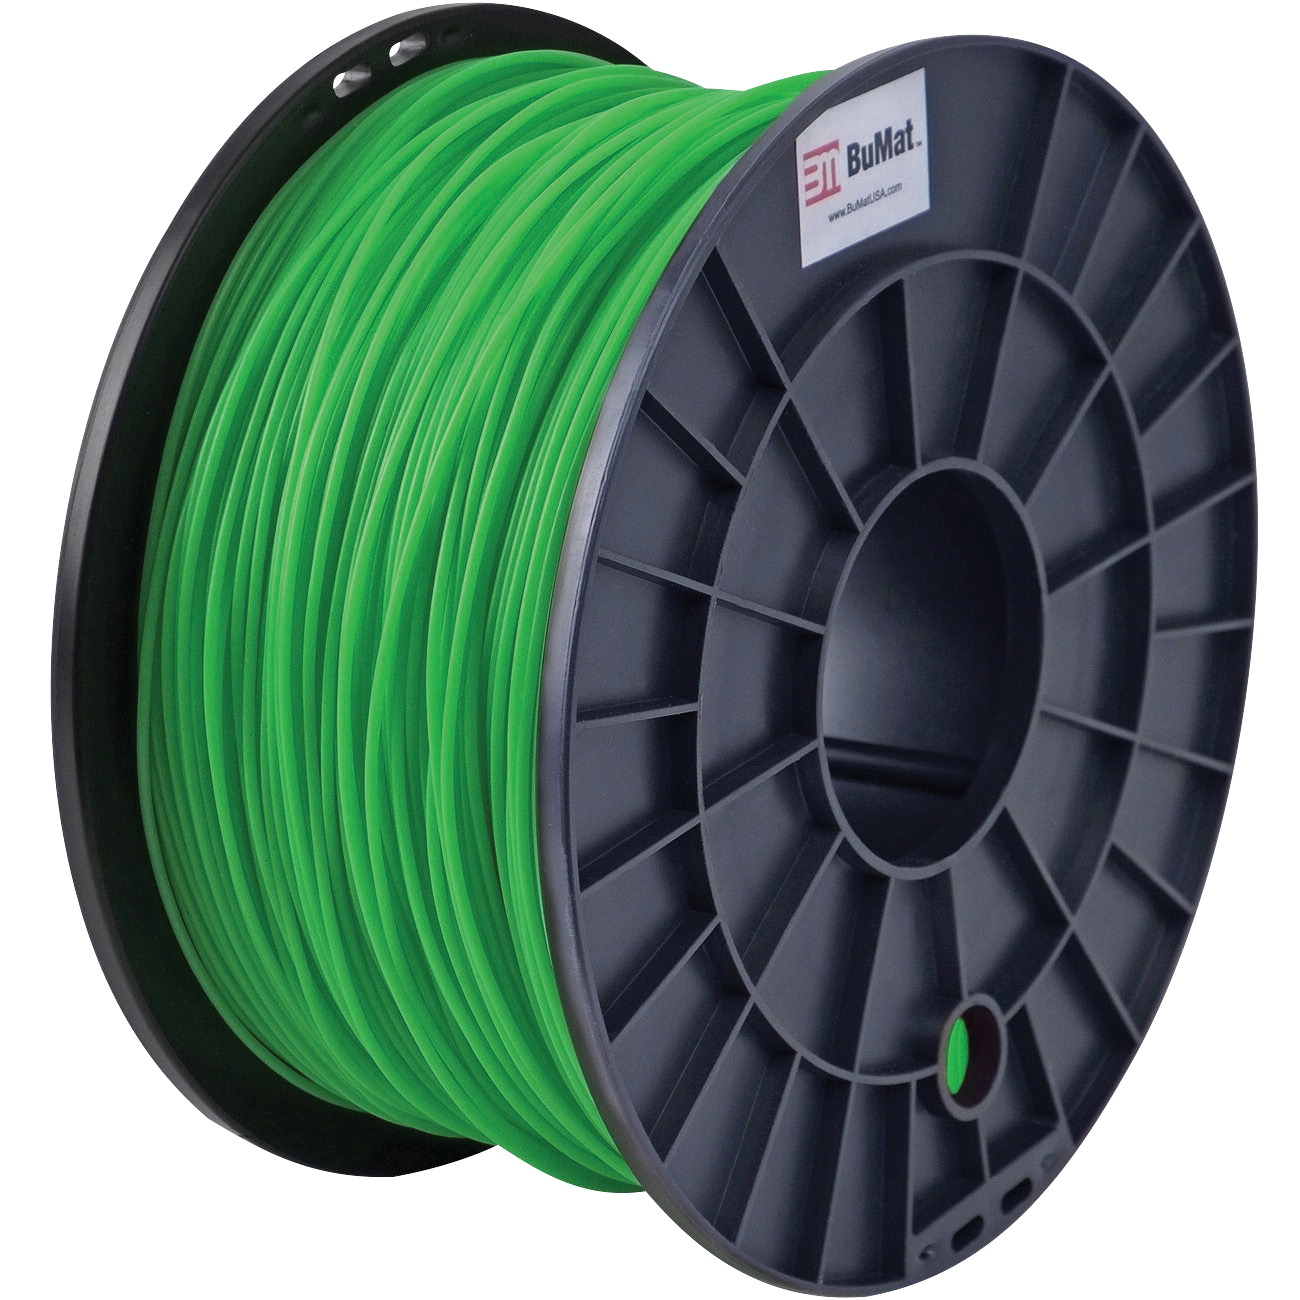 BuMat Filament Cartridge, 1.75 mm, ABS, Green, For Use With 3D Printer Nozzles